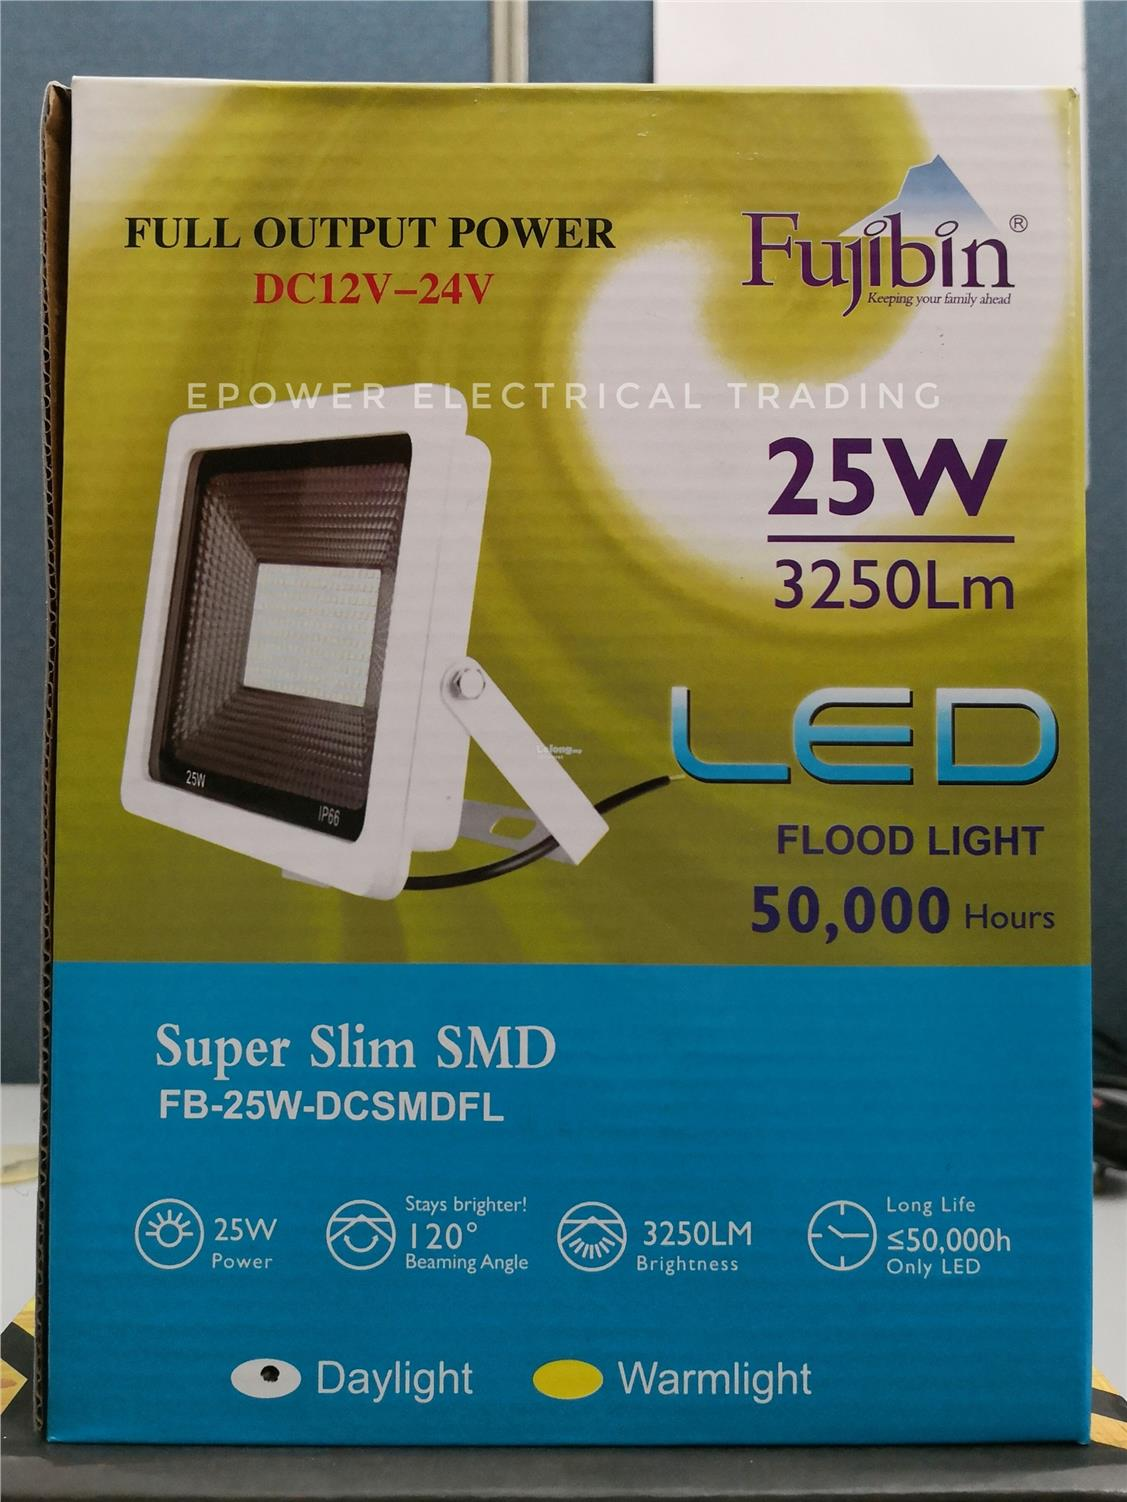 FUJIBIN 12V-24V 25W SUPER SLIM LED FLOOD LIGHT IP65 3250LM 6000K